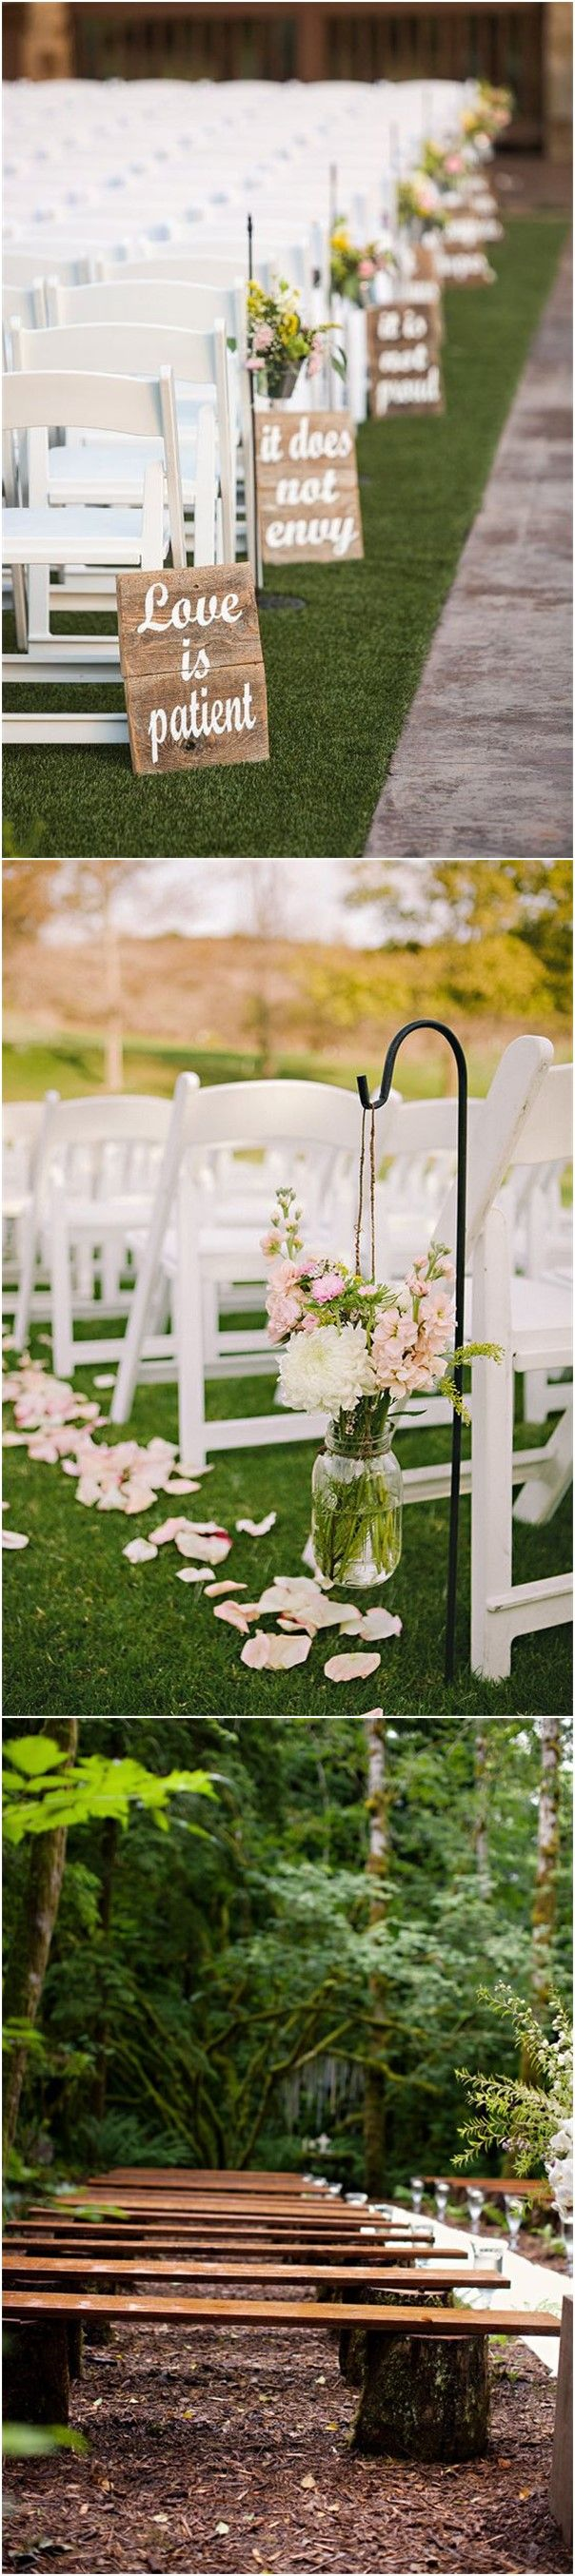 25 Rustic Outdoor Wedding Ceremony Decorations Ideas Cool Weddings